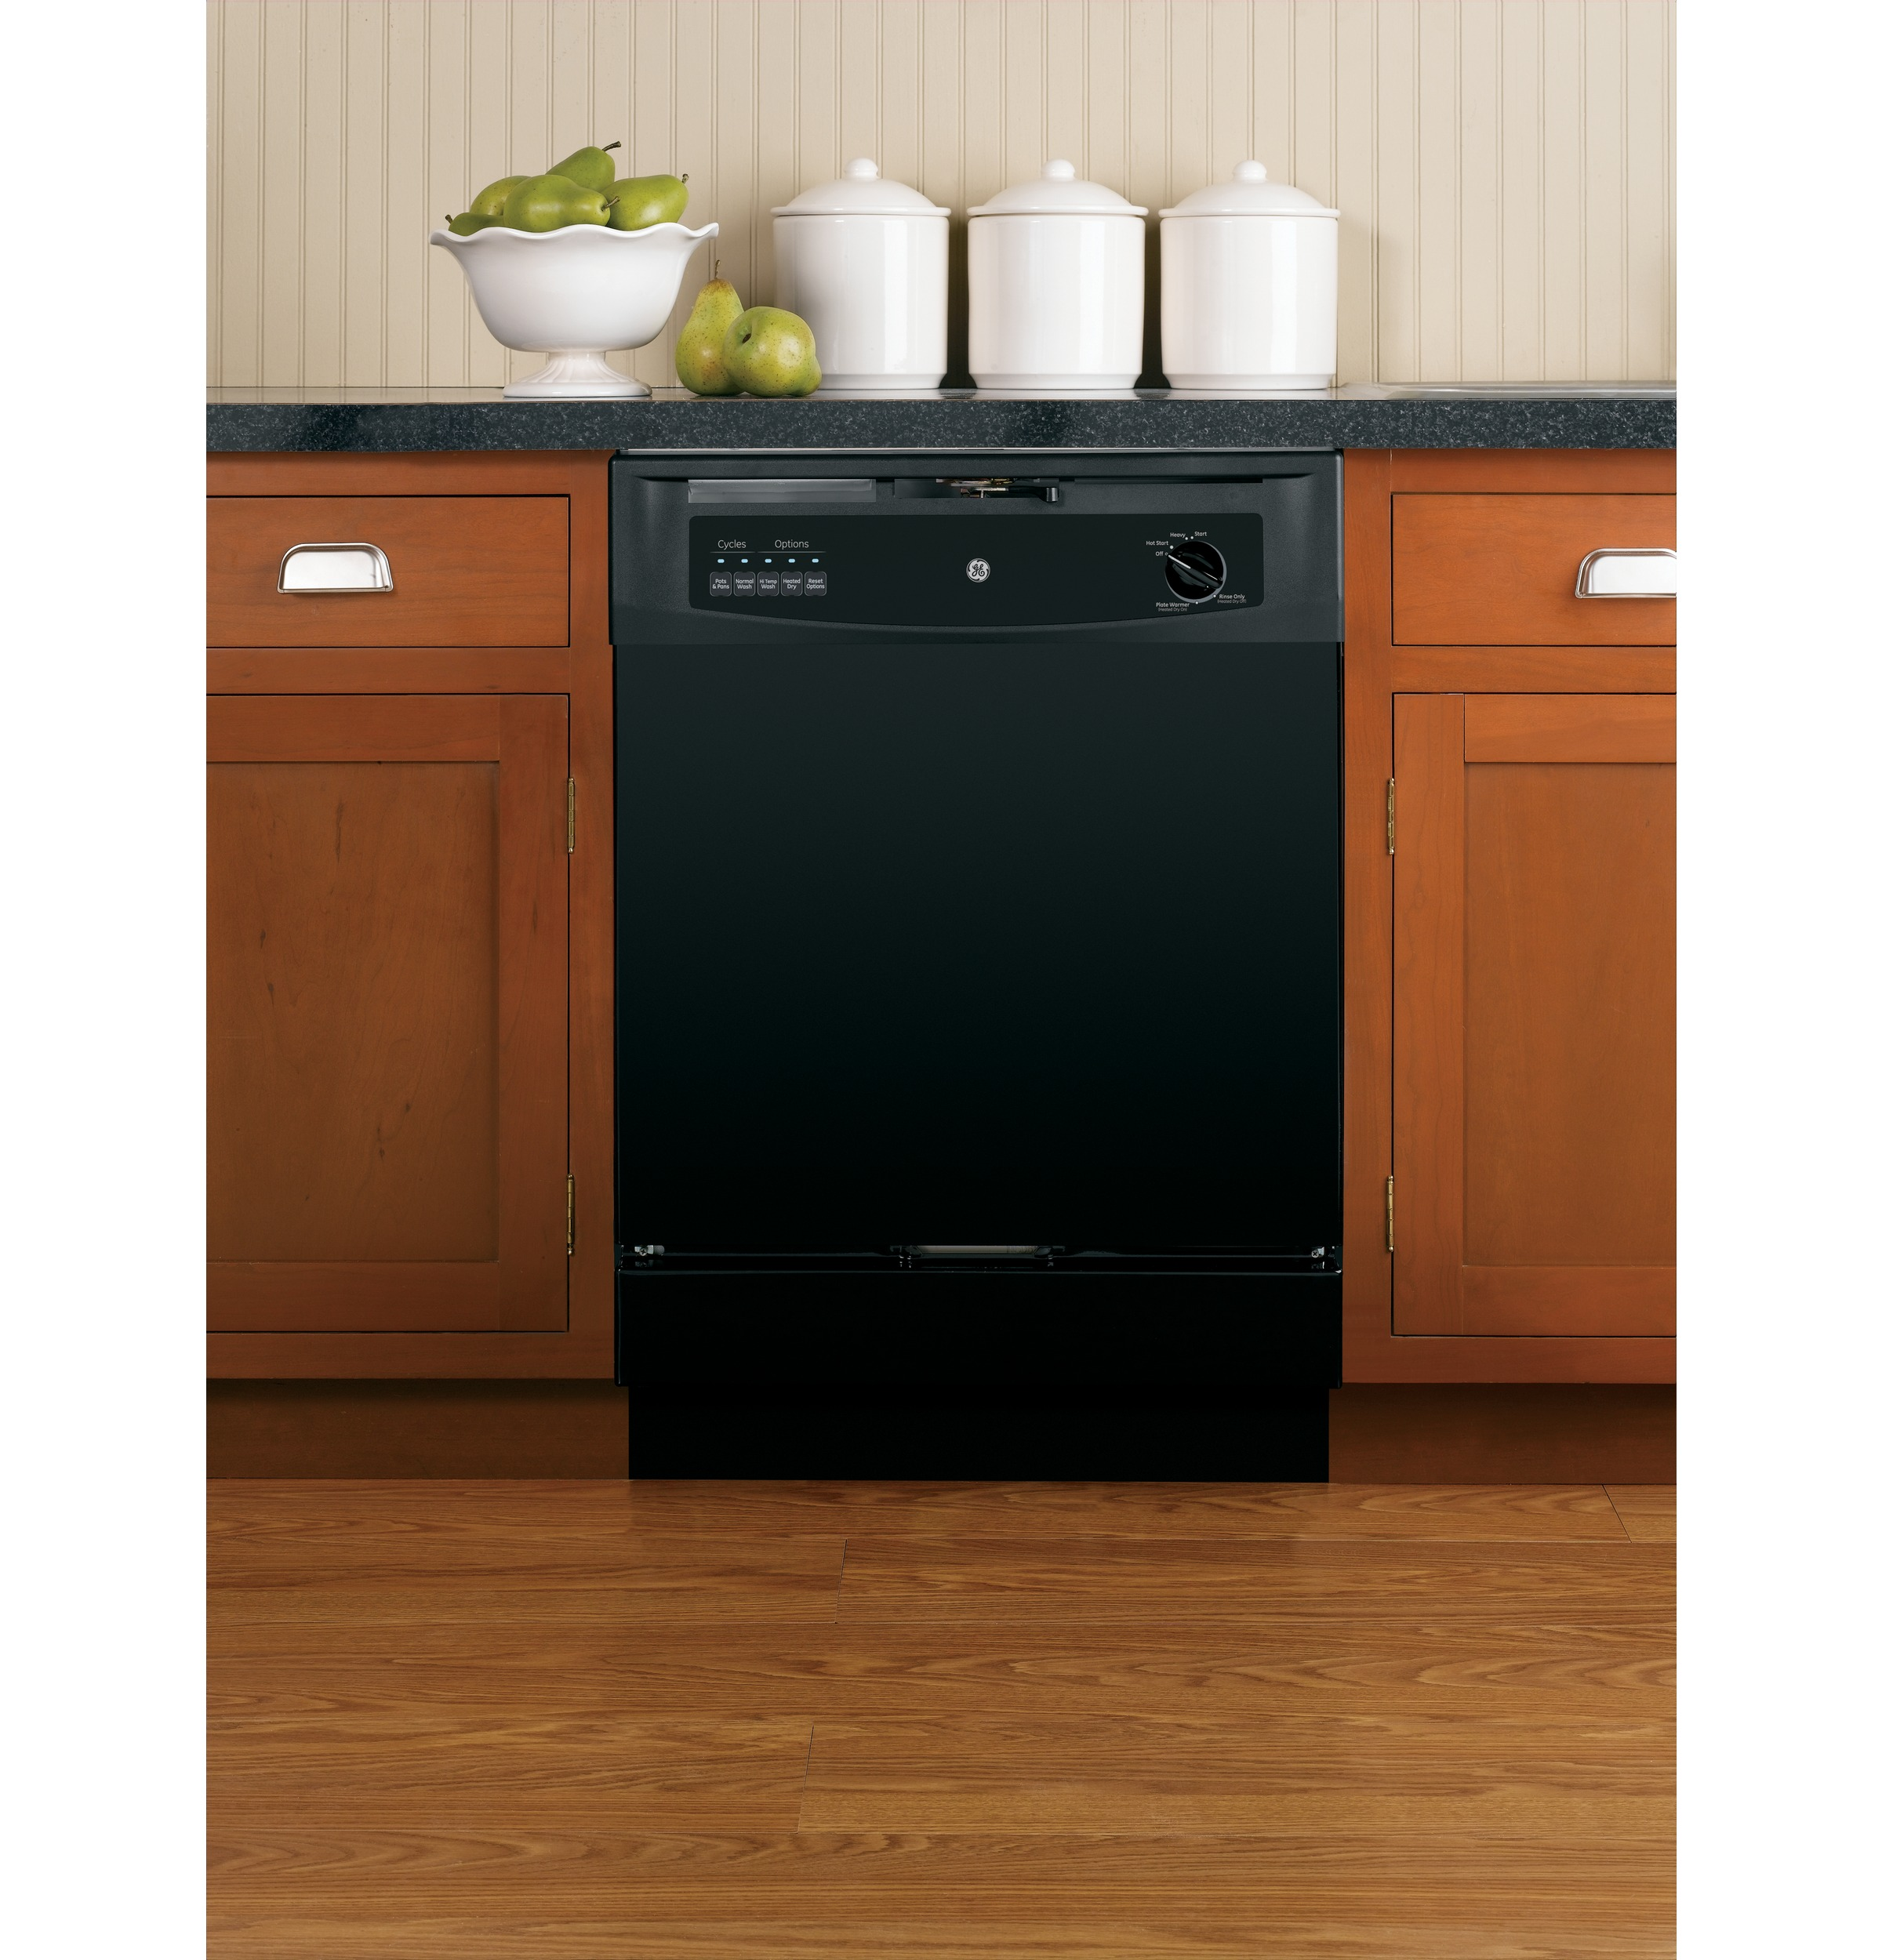 GSD3300KBB Built-In Dishwasher with 5-level wash system  Hot Start option  Insulation blanket  Up to 12-place setting capacity racking and Hard food disposer in Black